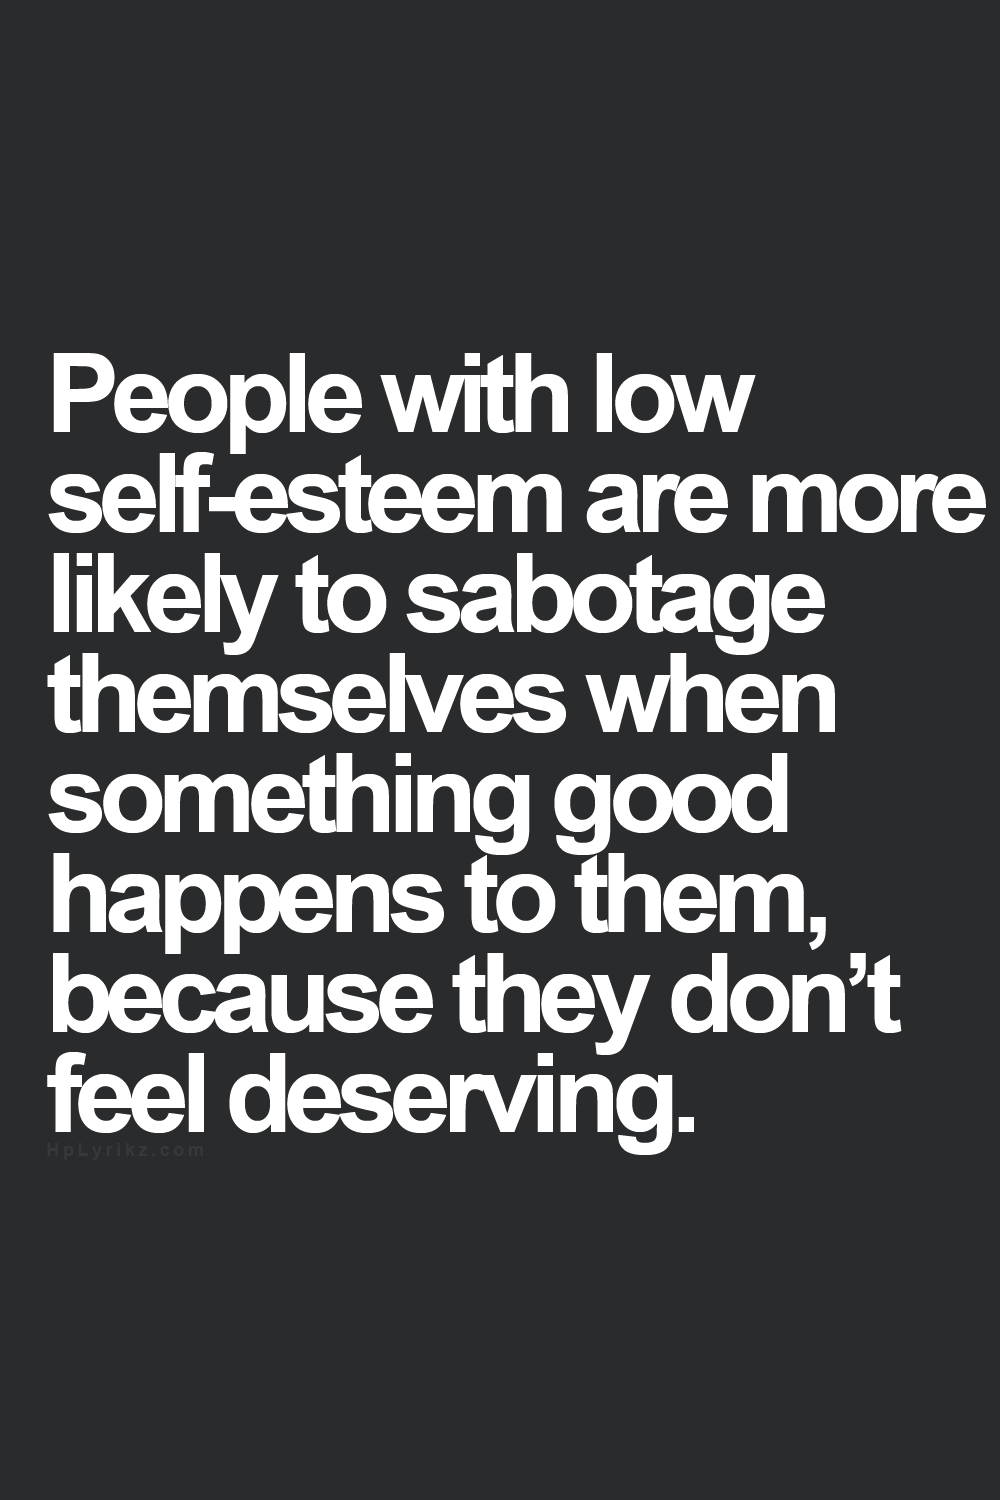 People With Low Self Esteem Are More Likely To Sabotage Themselves